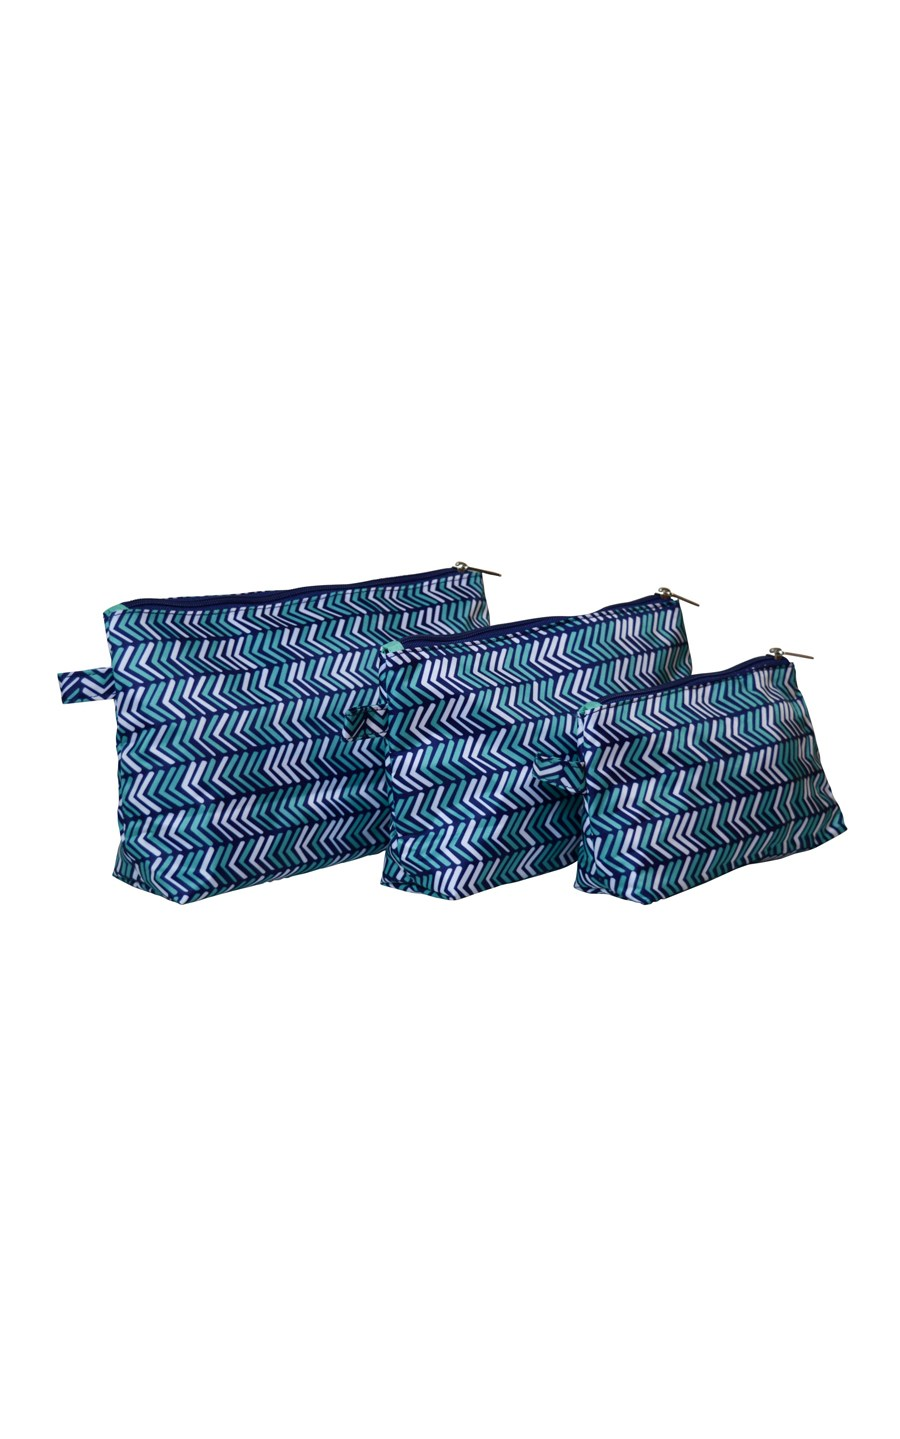 Vacay This Way 3 Piece Cosmetic Bag Set - FINAL SALE